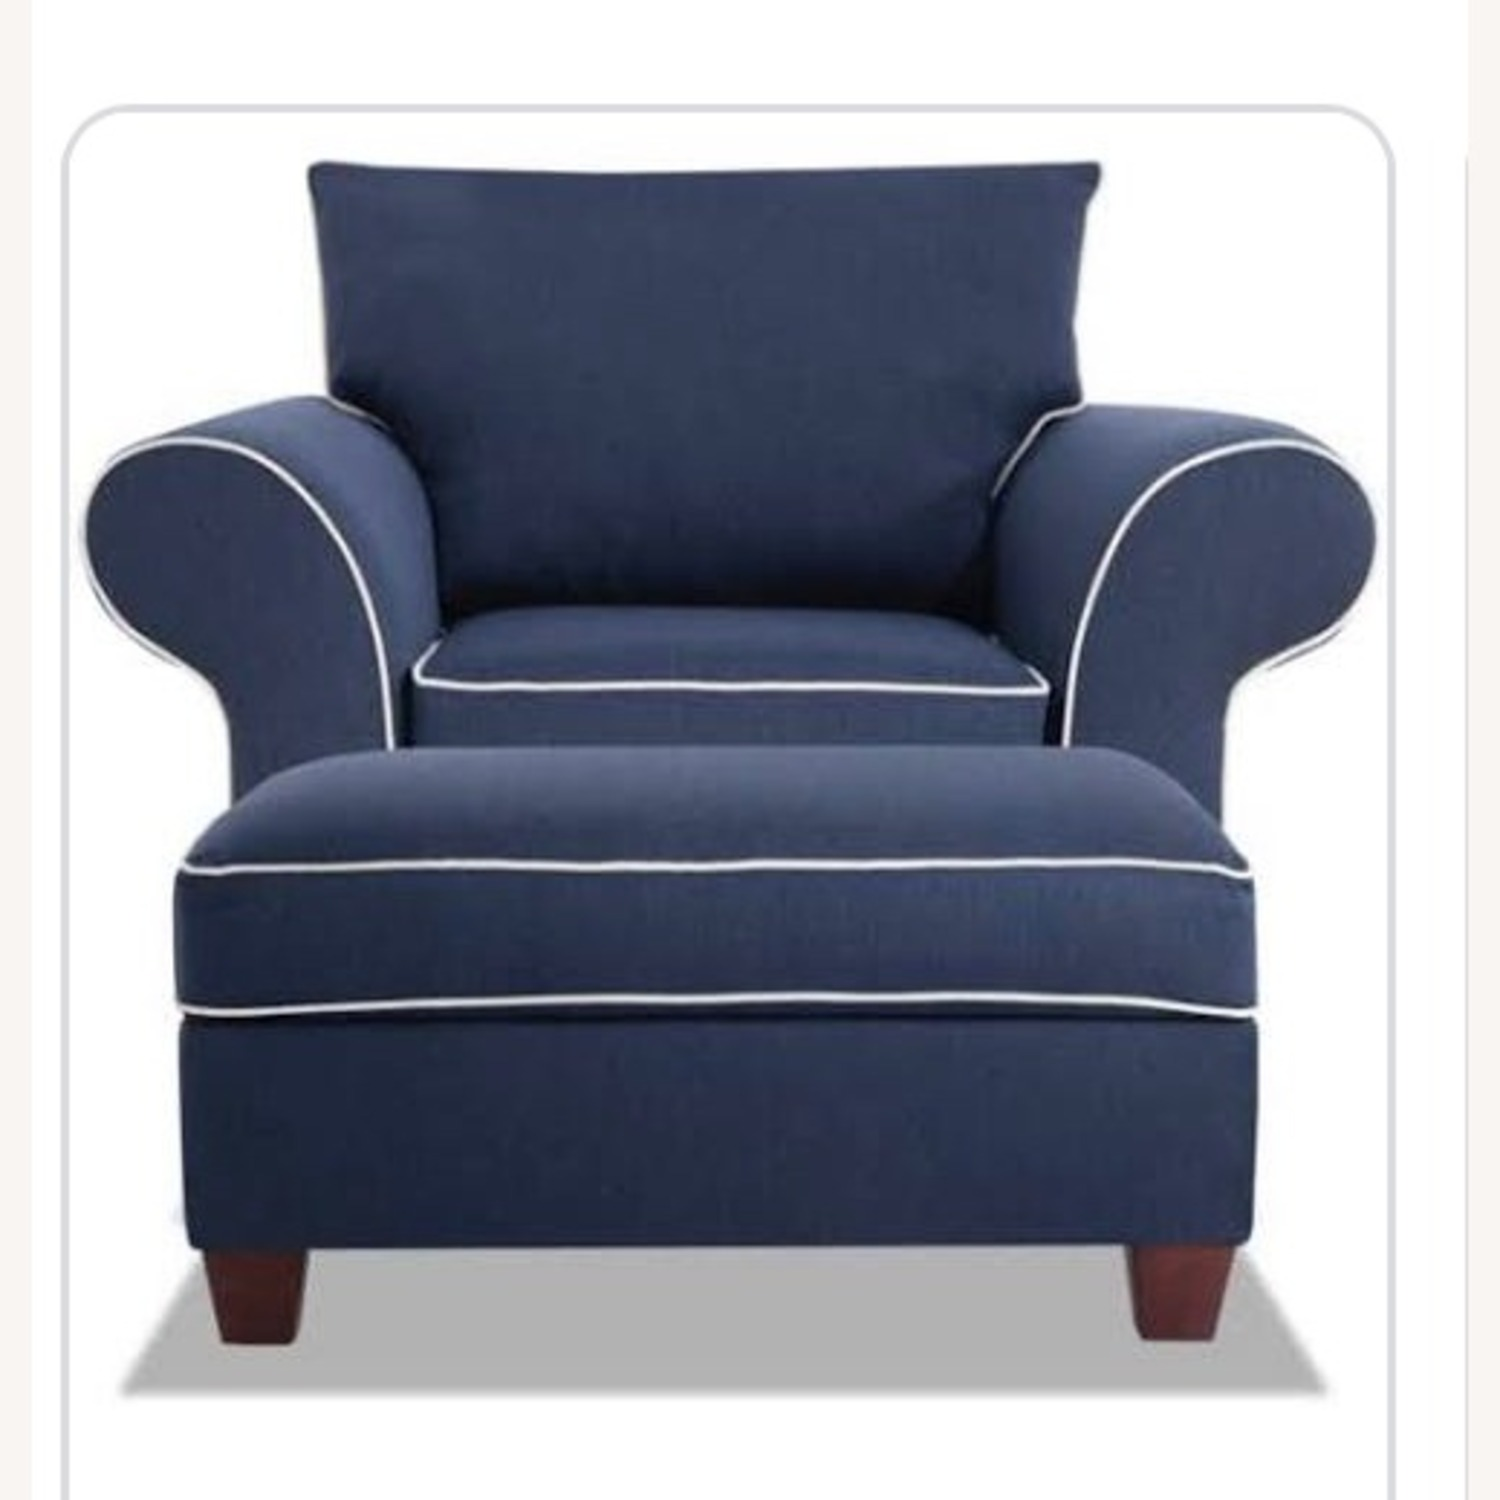 Bob's Discount Furniture Armchair with Ottoman - image-1